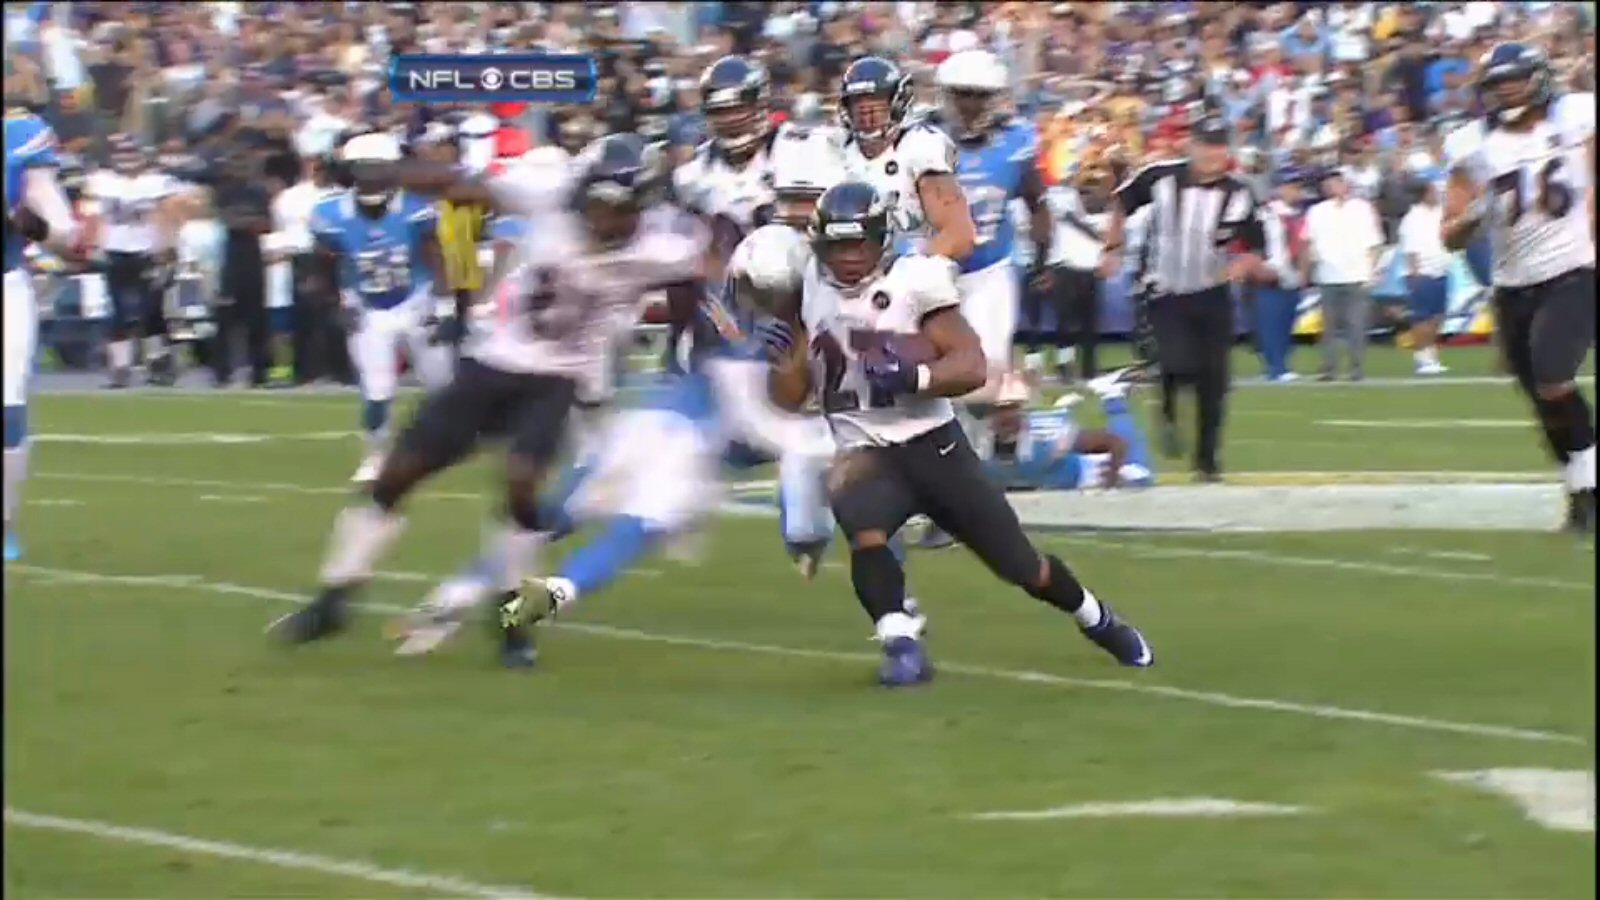 This freeze frame showing that Boldin s upper arm is clearly behind  Weddle s shoulder pad (note the white trim interrupting the line of  Boldin s left arm 5f373a7eeb25f